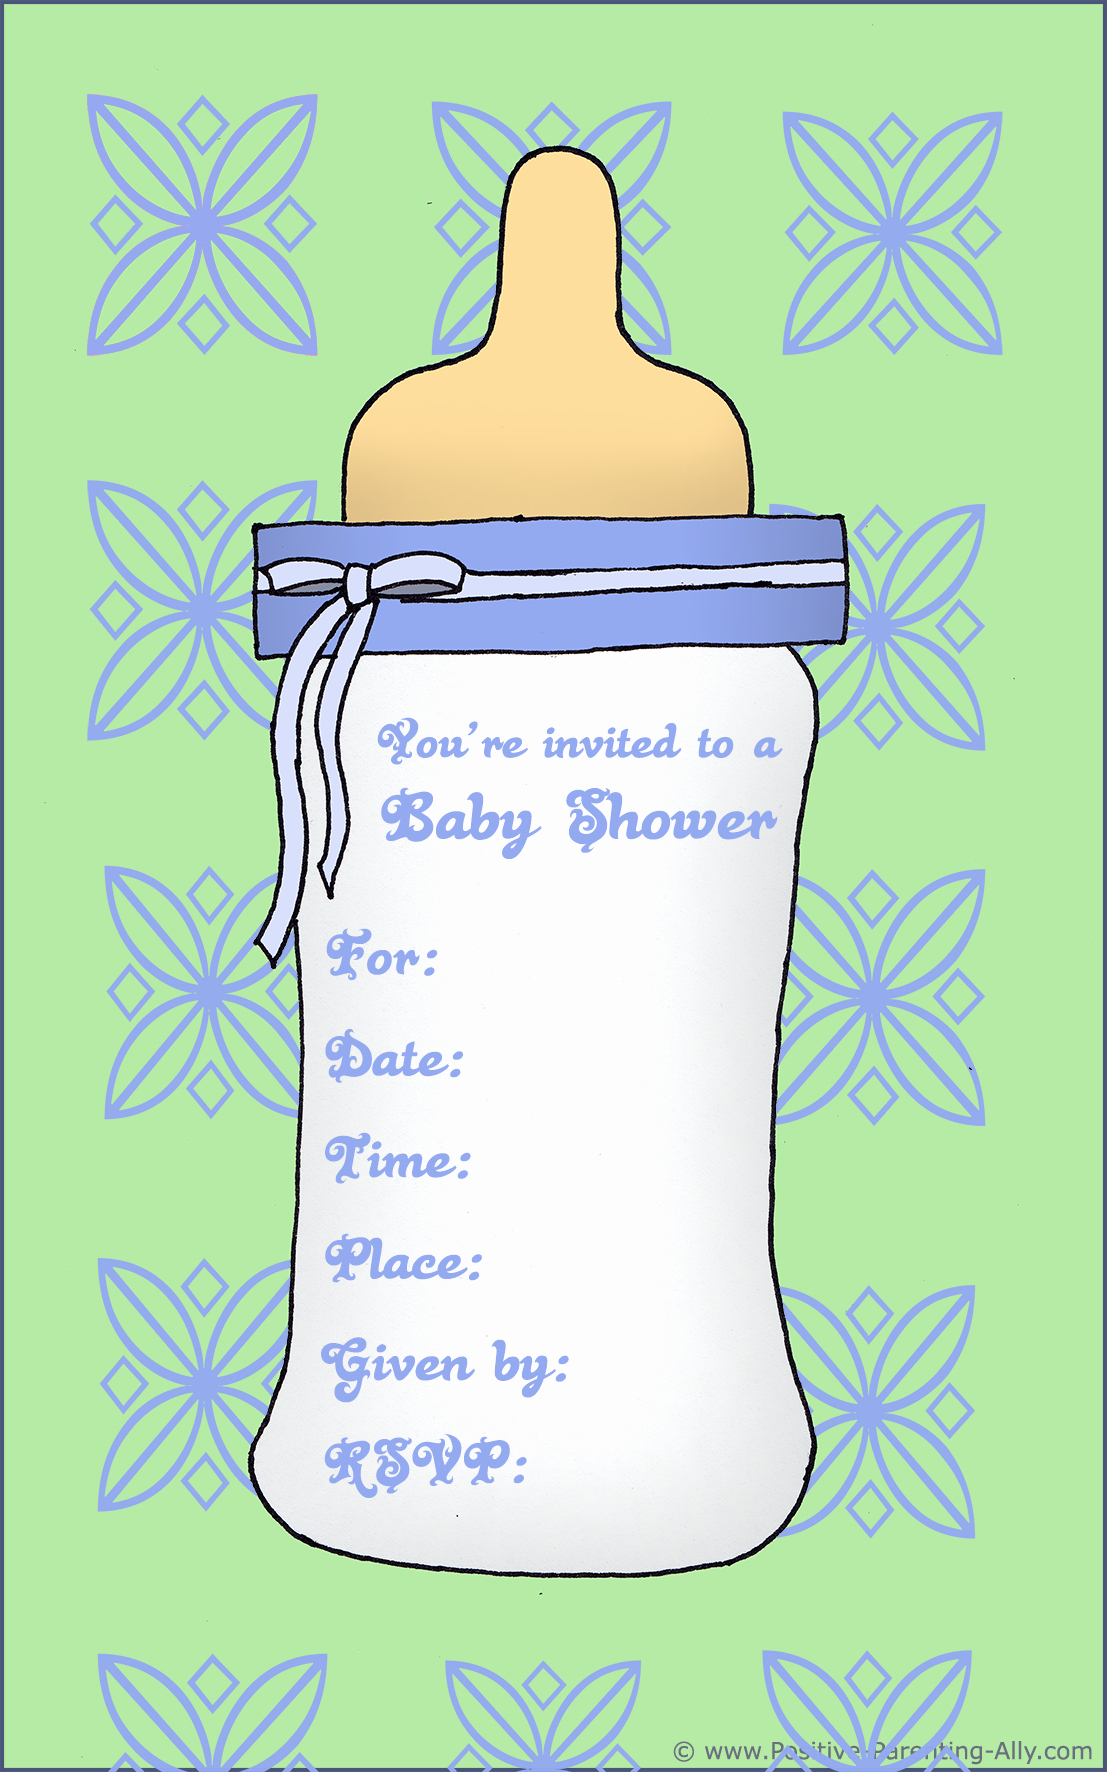 Printable Baby Shower Invitation Inspirational Free Printable Baby Shower Invitations In High Quality